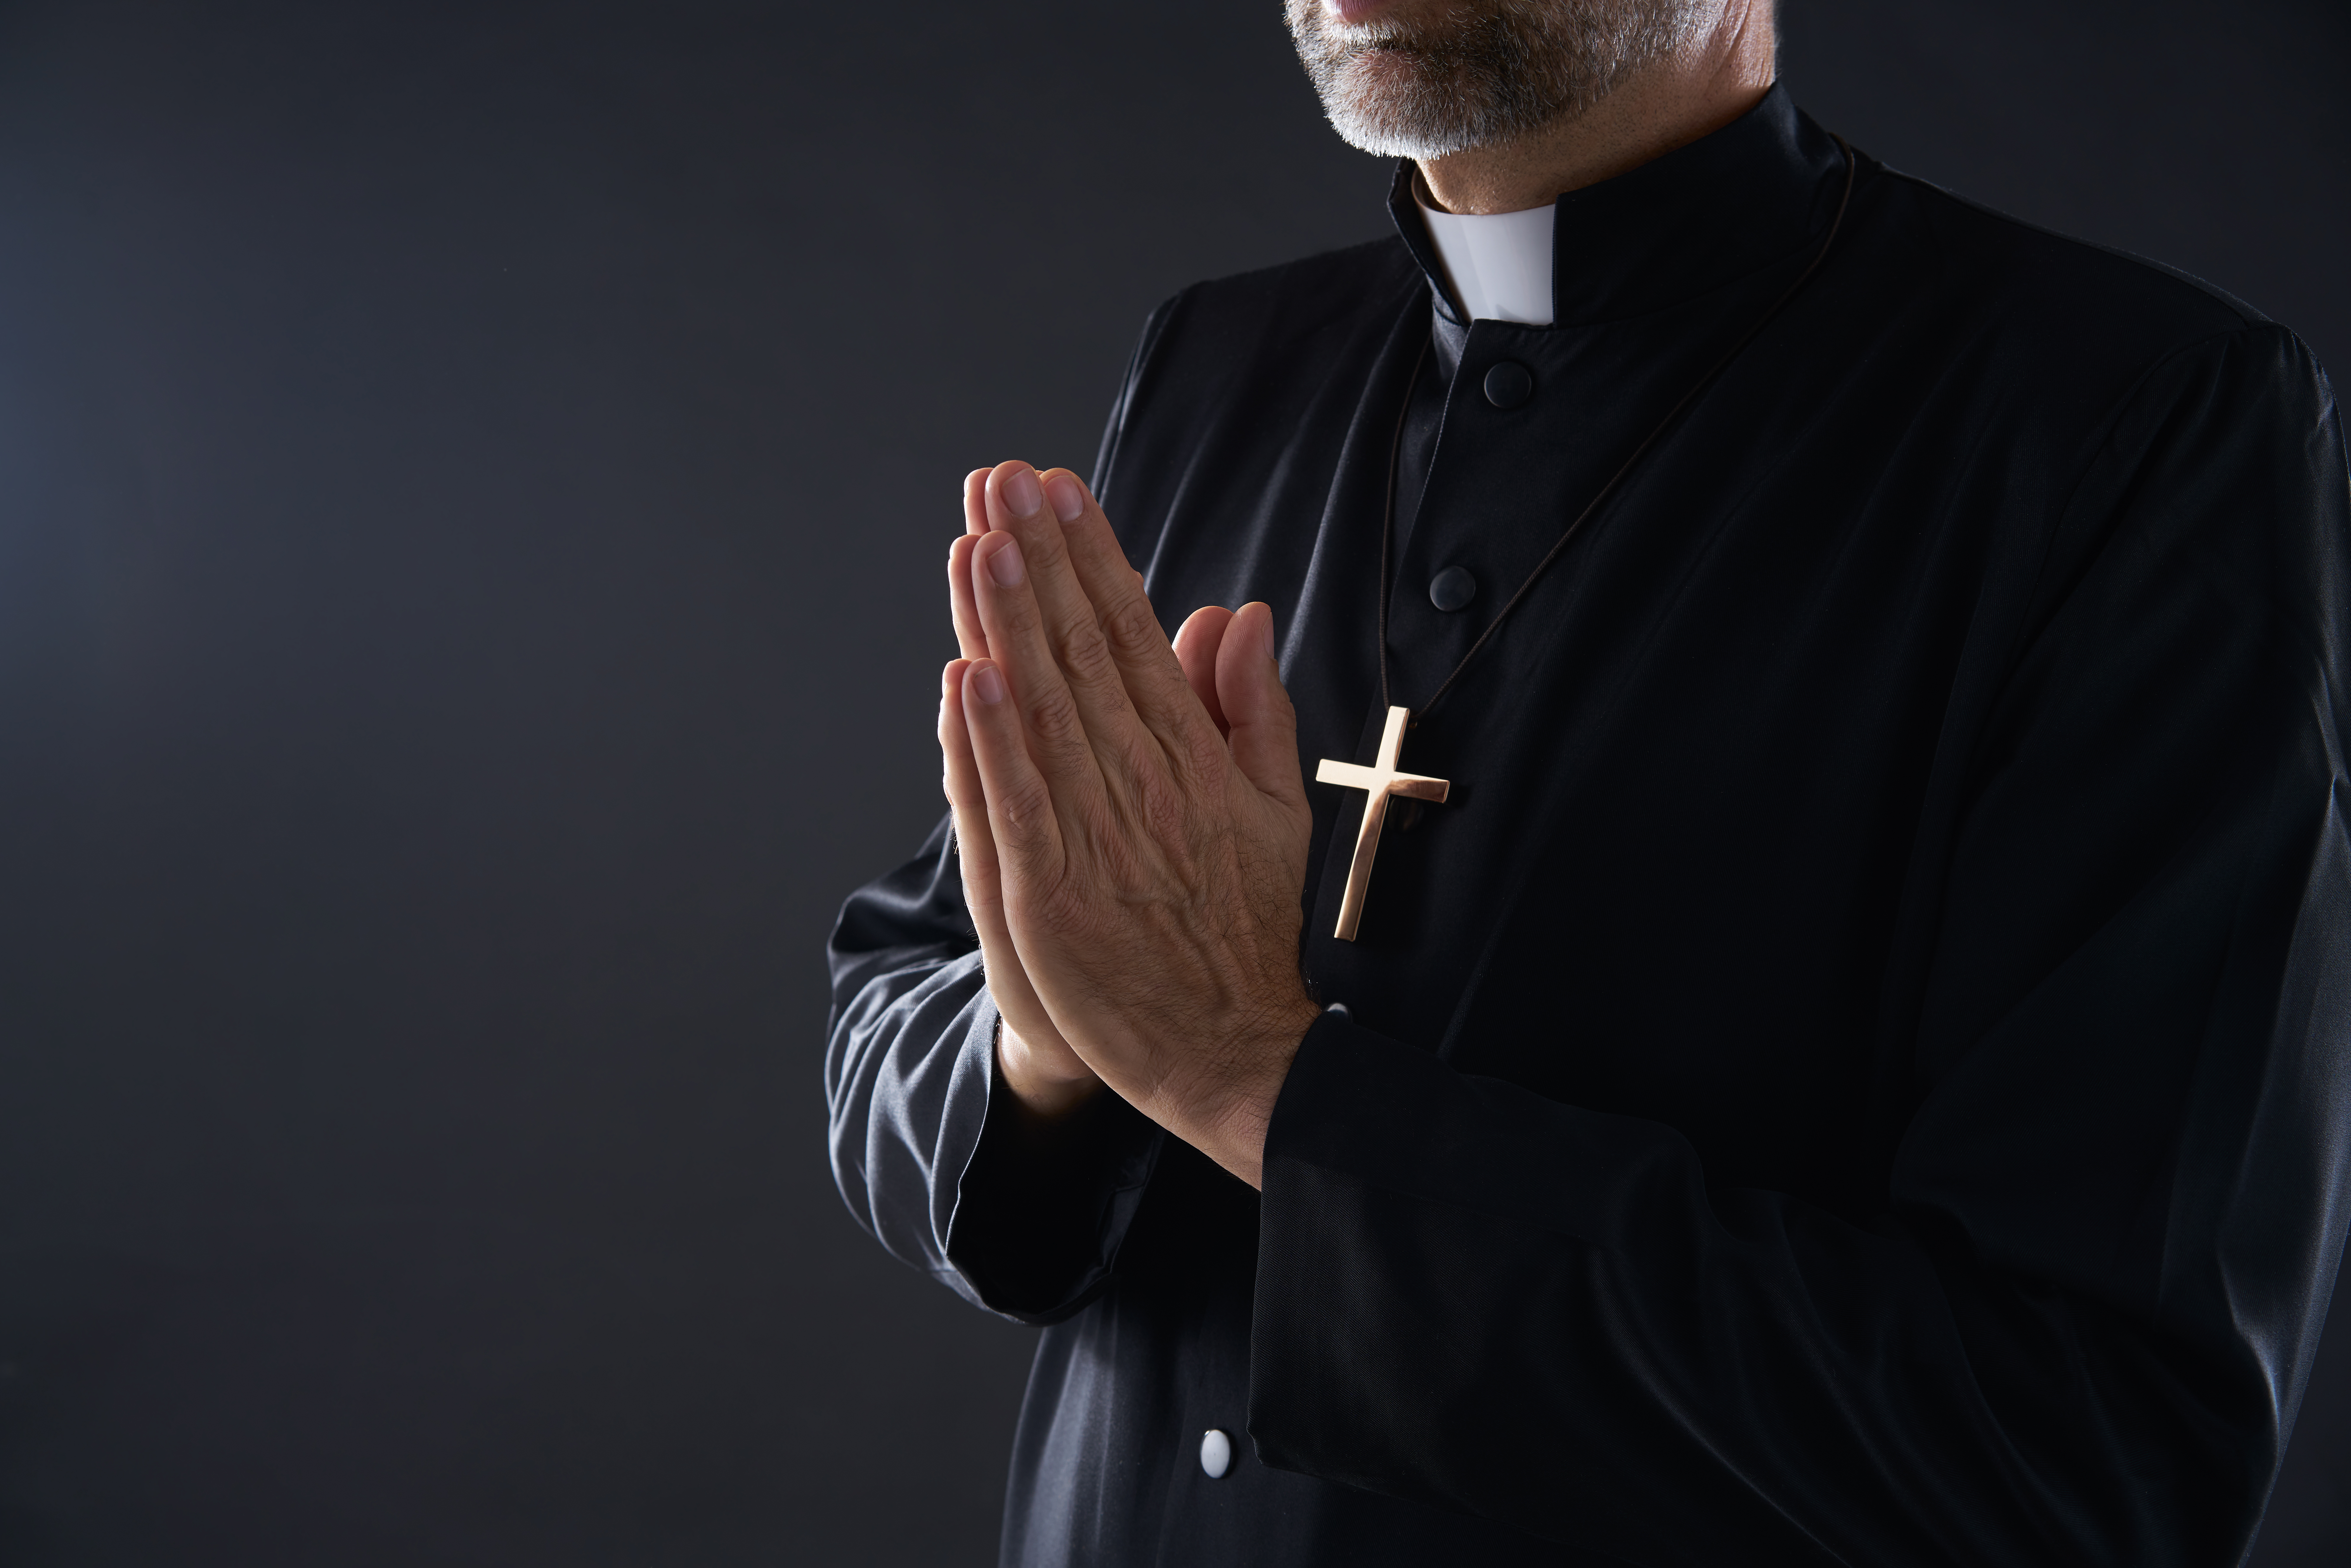 """Anti-gay priest on trial for allegedly having sex with men to help """"heal"""" their homosexual desires"""